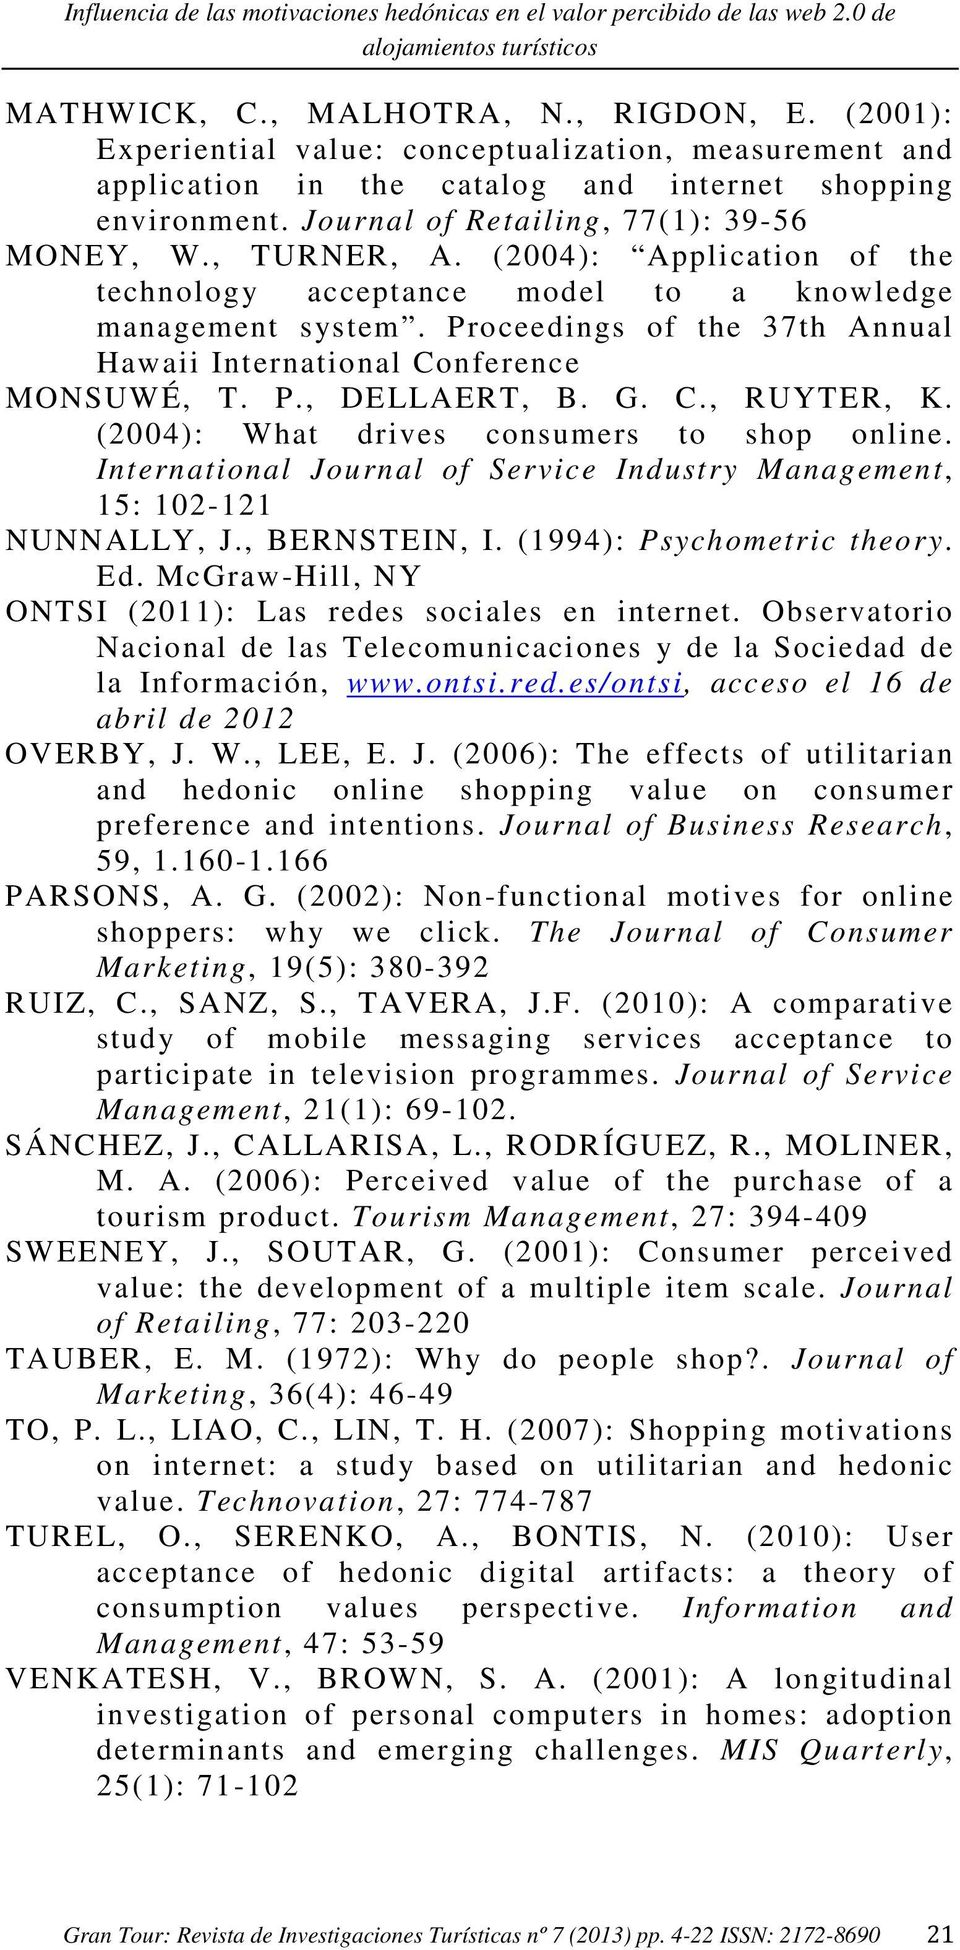 (2004): Application of the technology acceptance model to a knowledge management system. Proceedings of the 37th Annual Hawaii International Conference MONSUWÉ, T. P., DELLAERT, B. G. C., RUYTER, K.